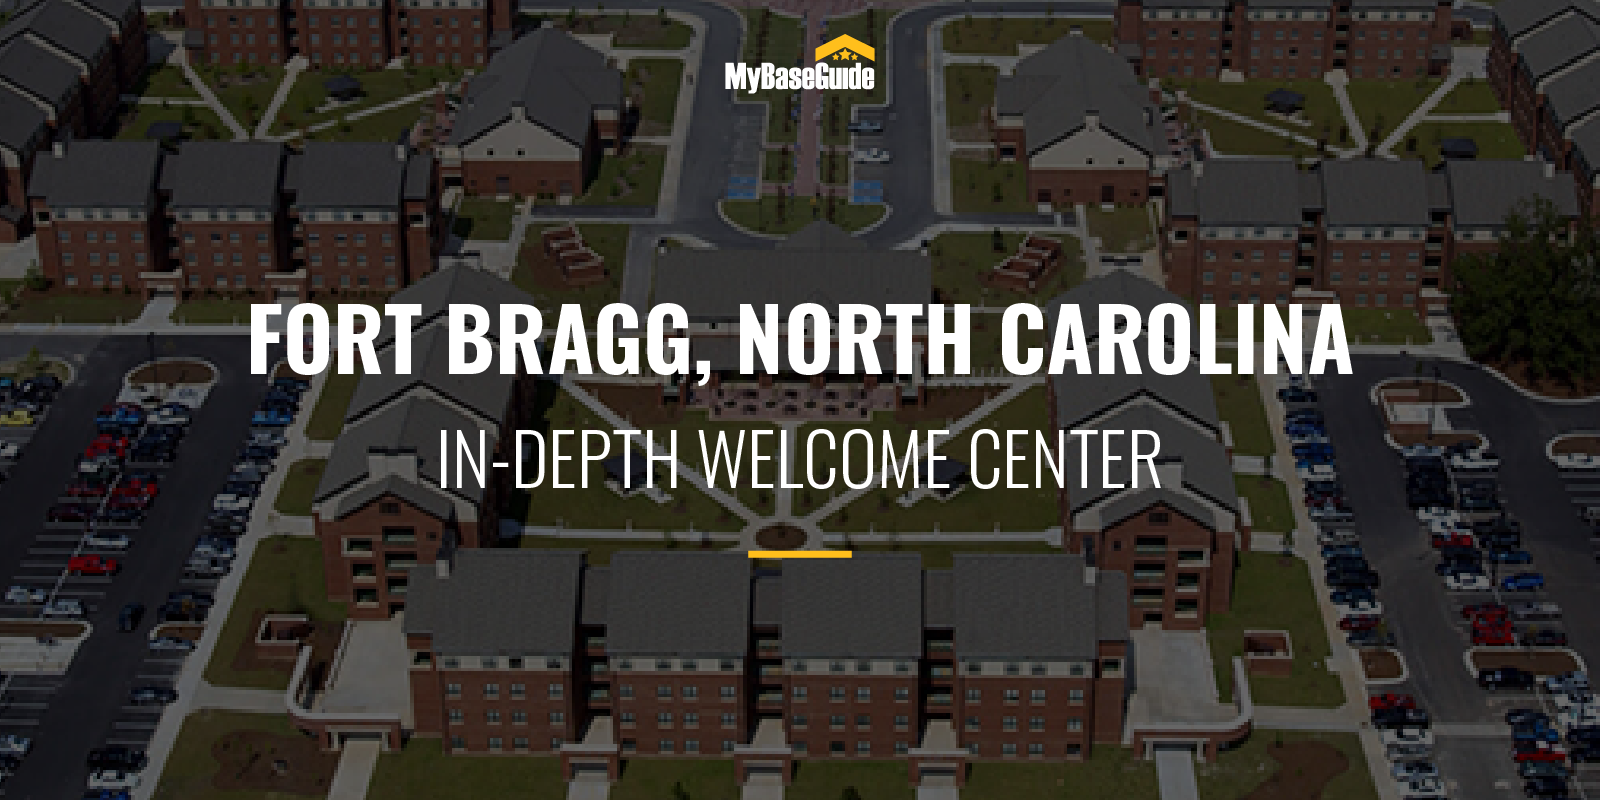 Fort Bragg In-Depth Welcome Center